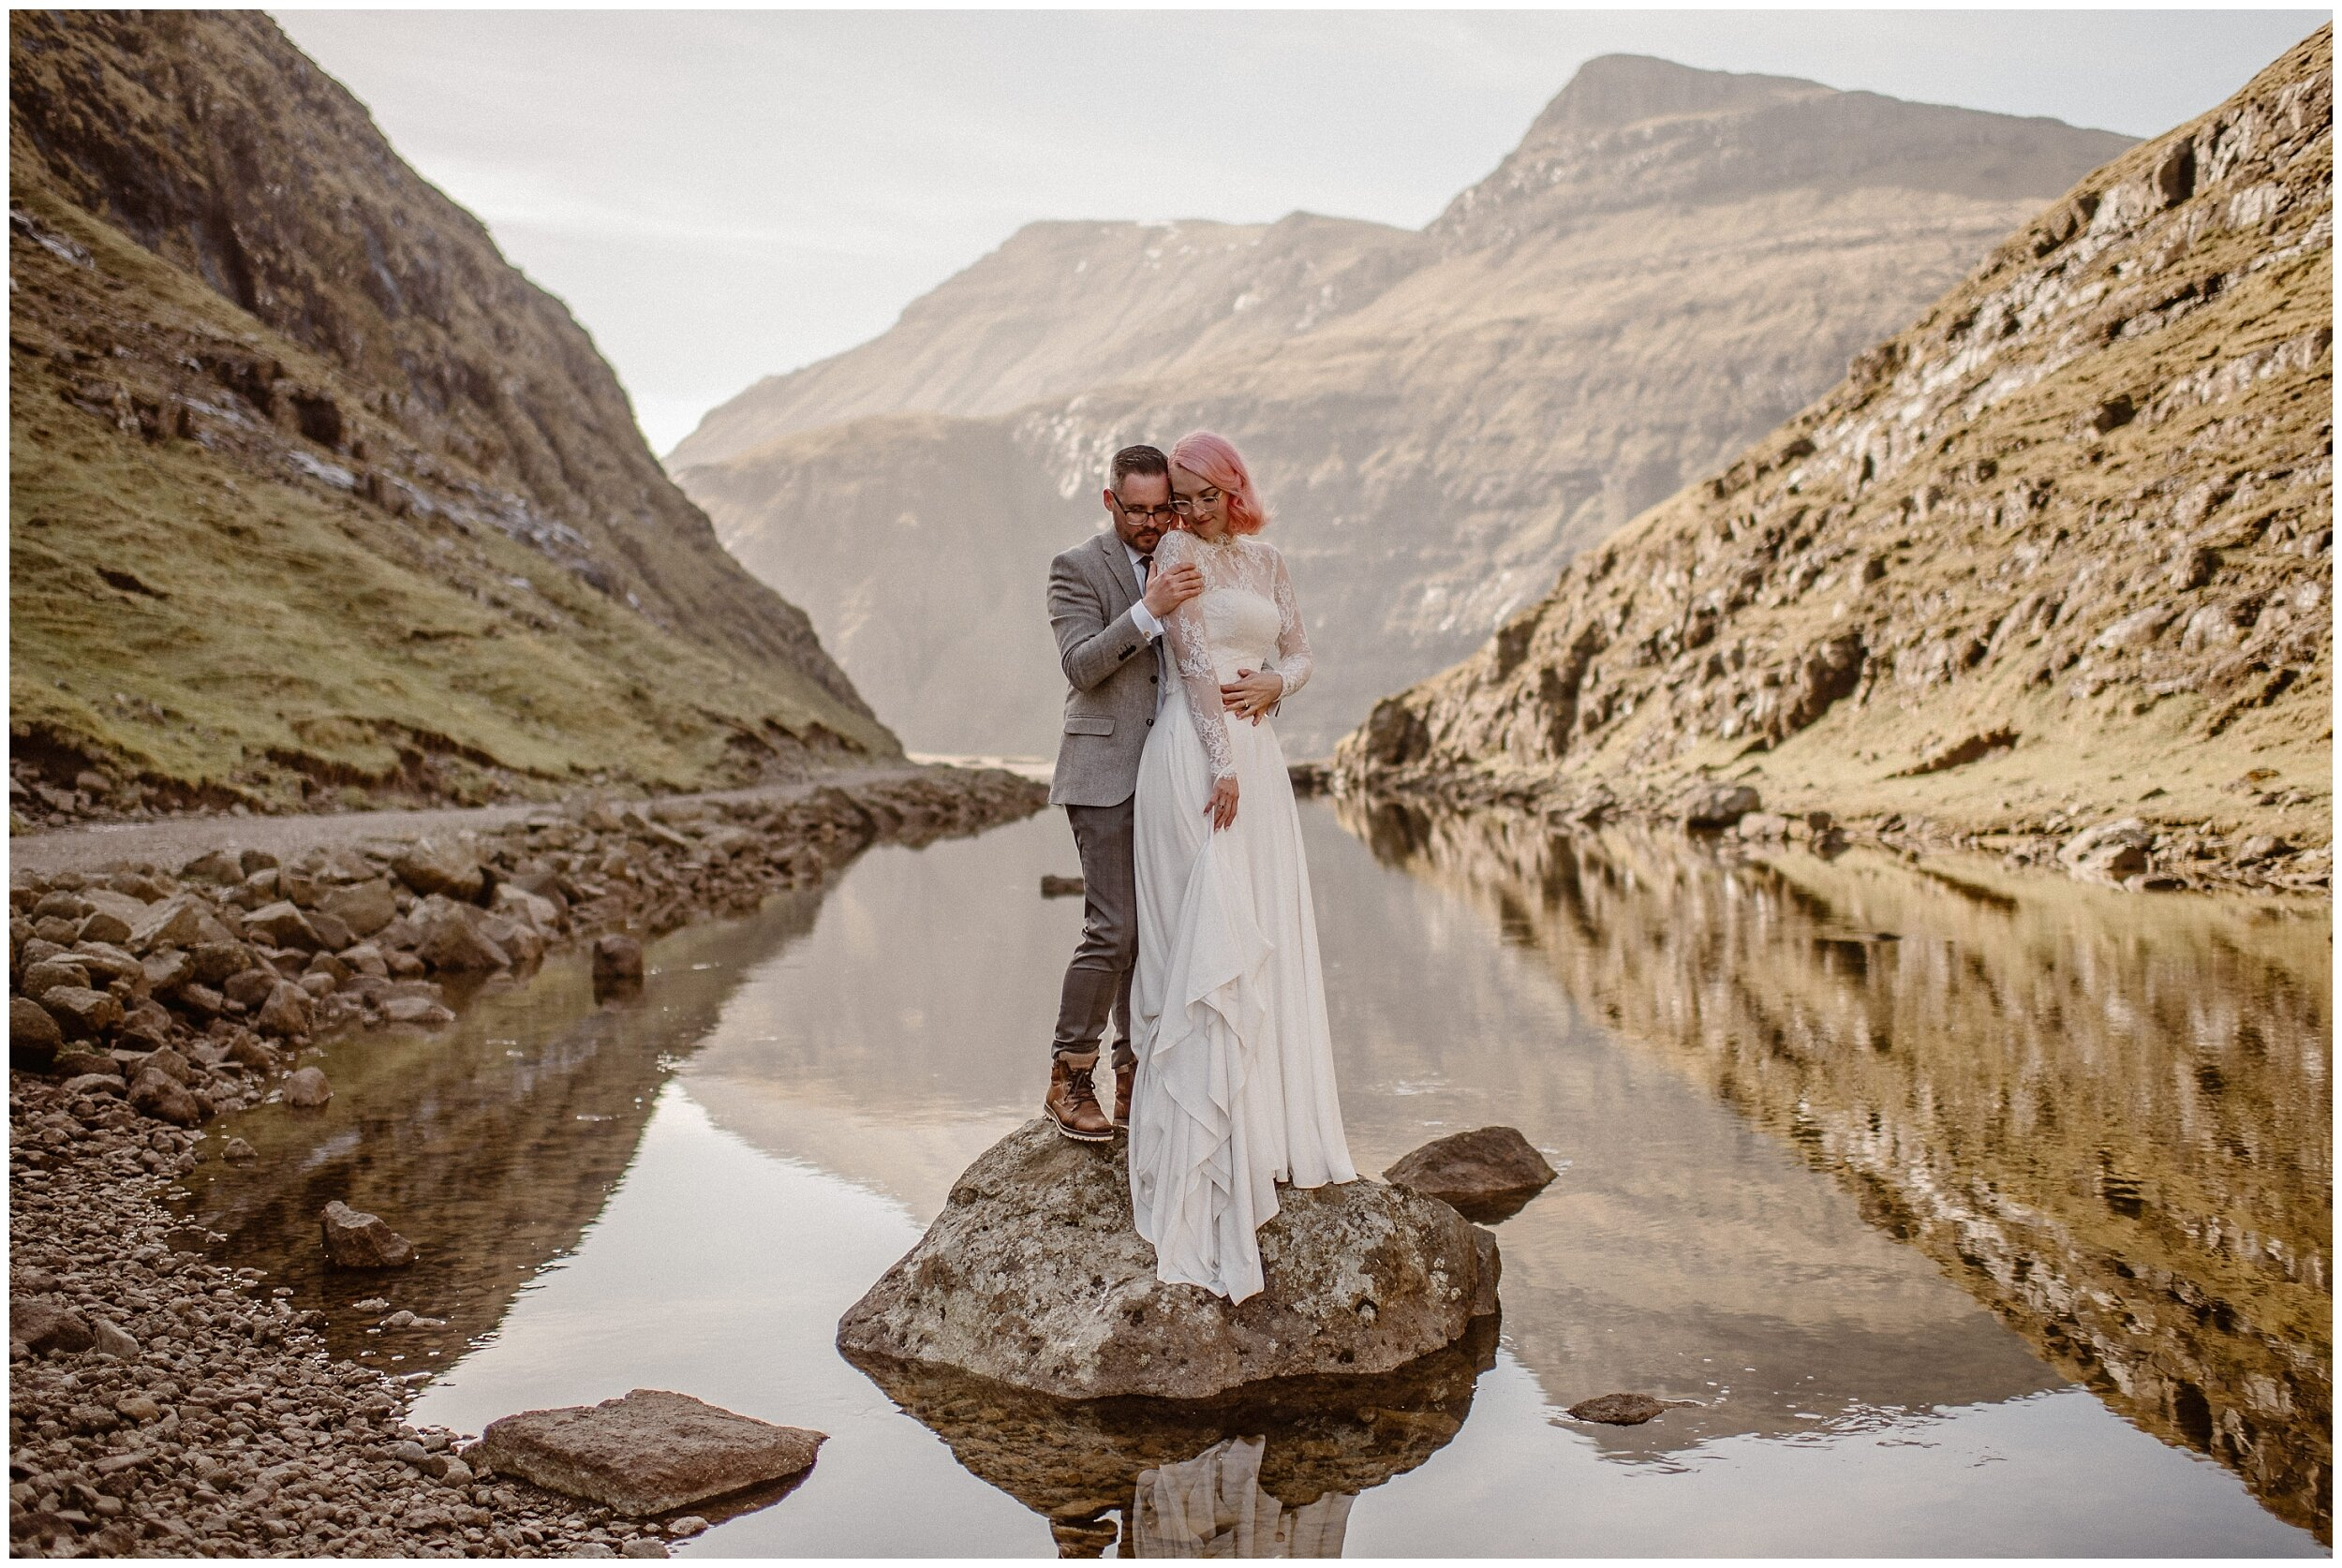 Elaura and Daryn stand up on a rock in a reflective lake as moutnains surroudn them. A gorgeous haze lays around the couple as they hold each other close in these adventure elopement photos captured by Adventure Instead.